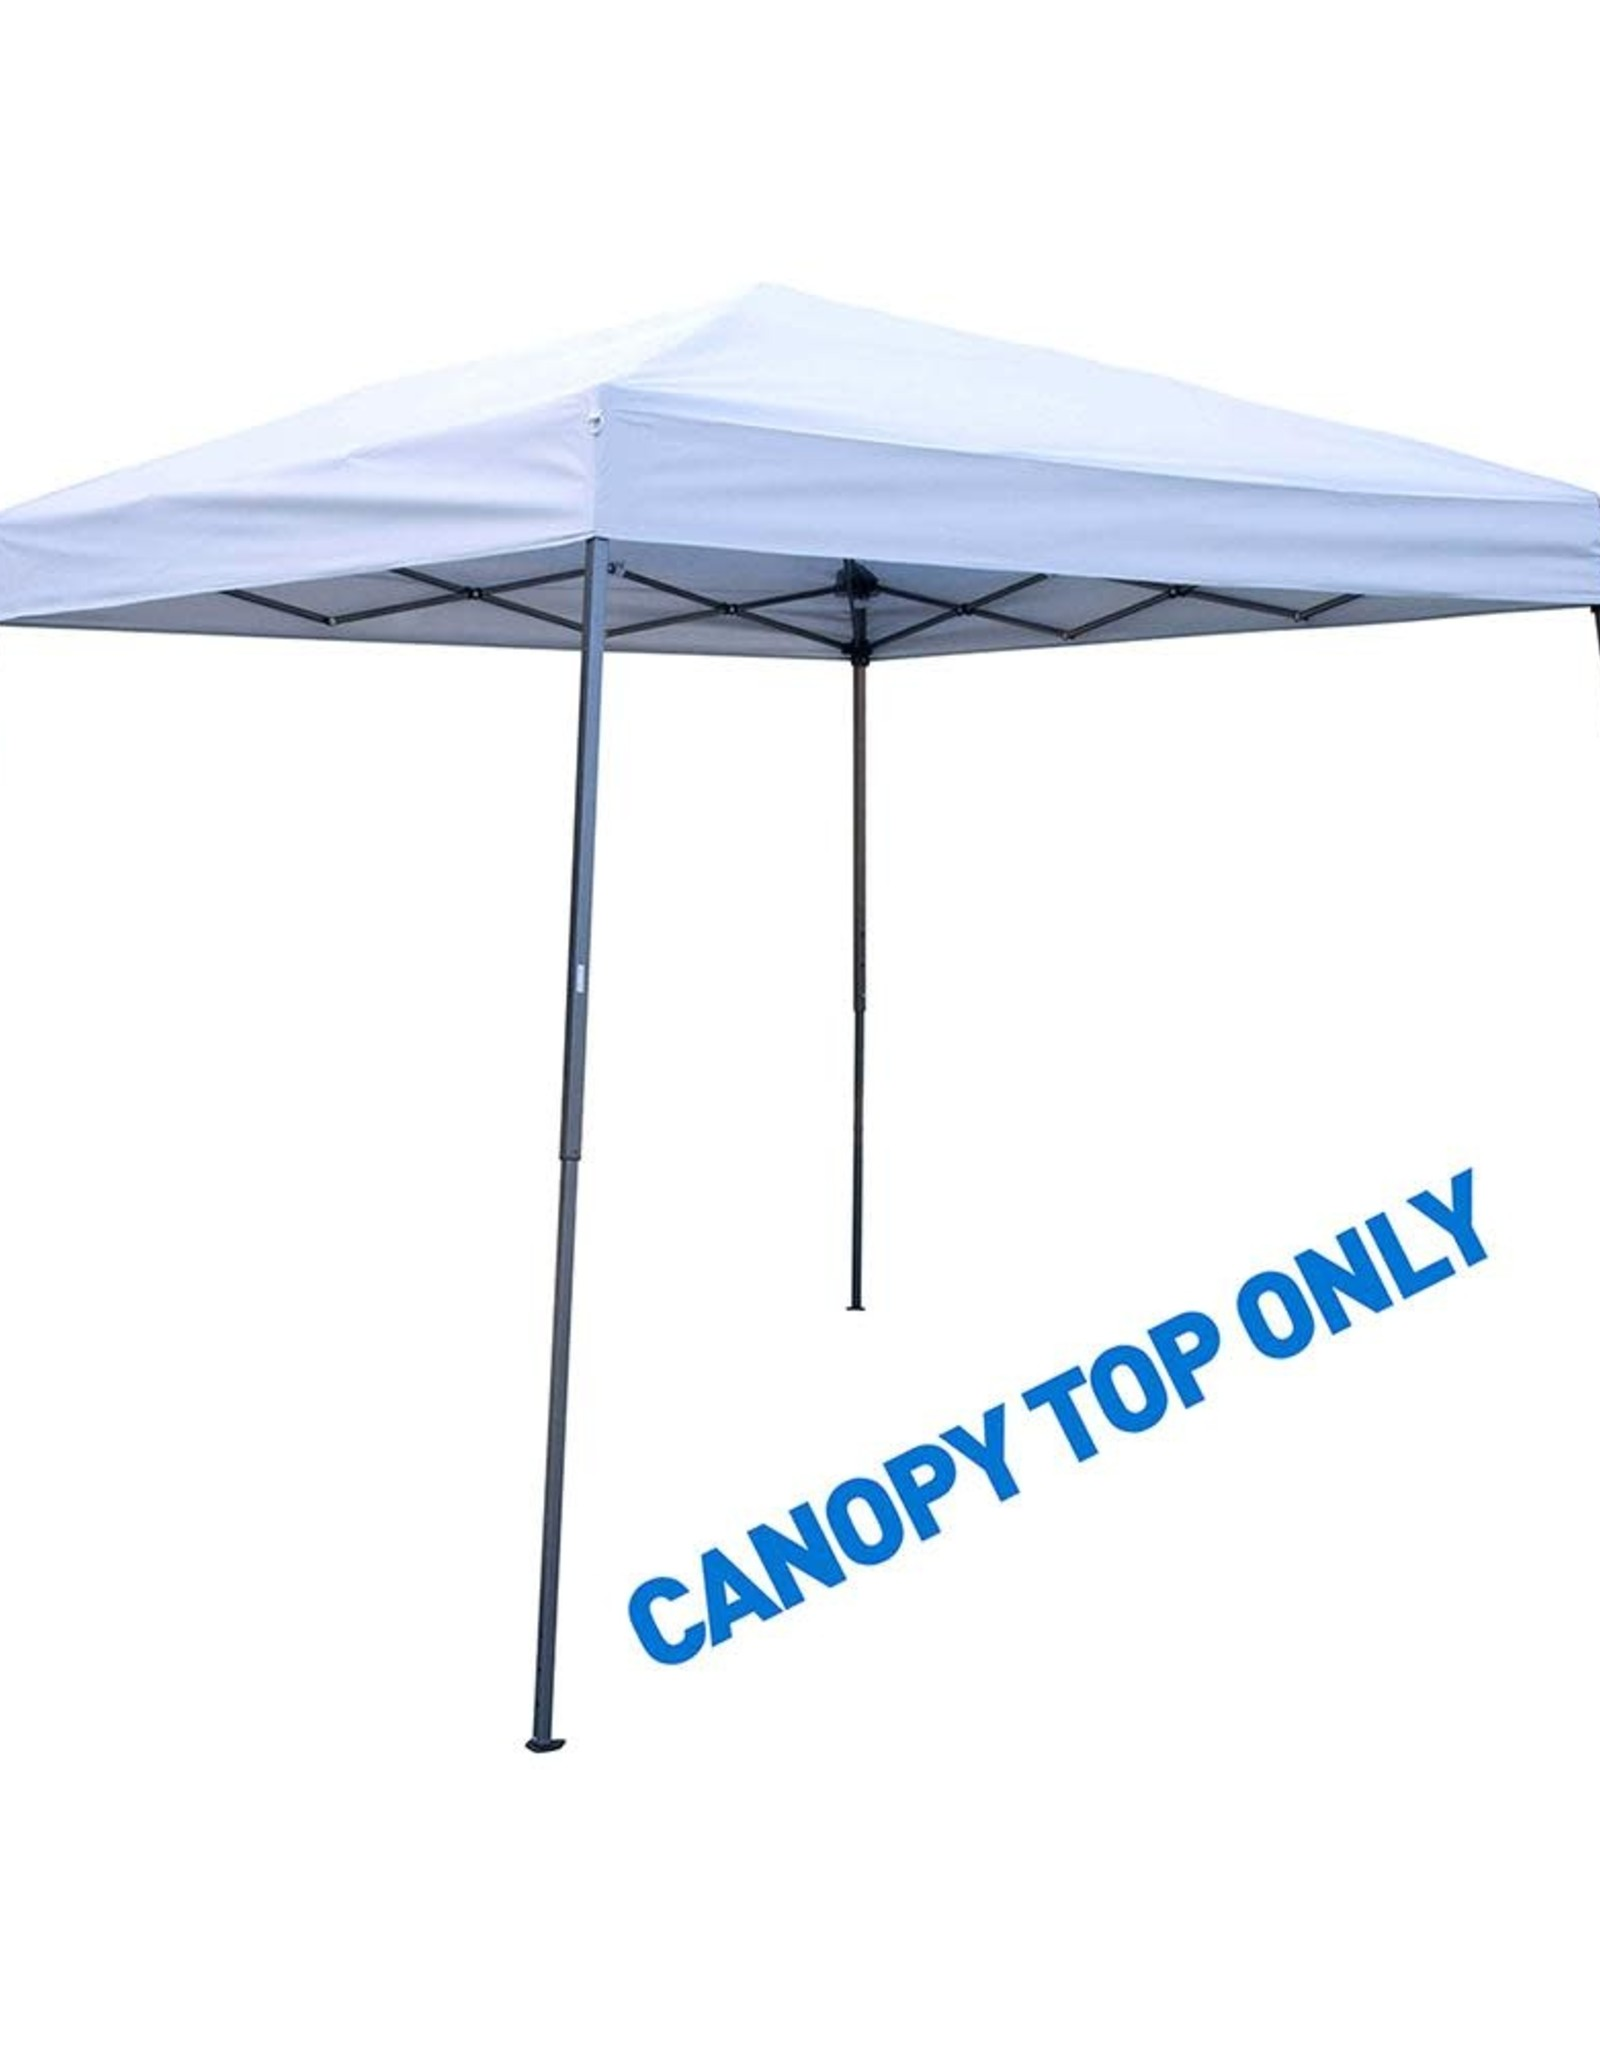 8 ft. x 8 ft. Silver Square Replacement Canopy Gazebo Top For 10 ft. Slant Leg Canopy